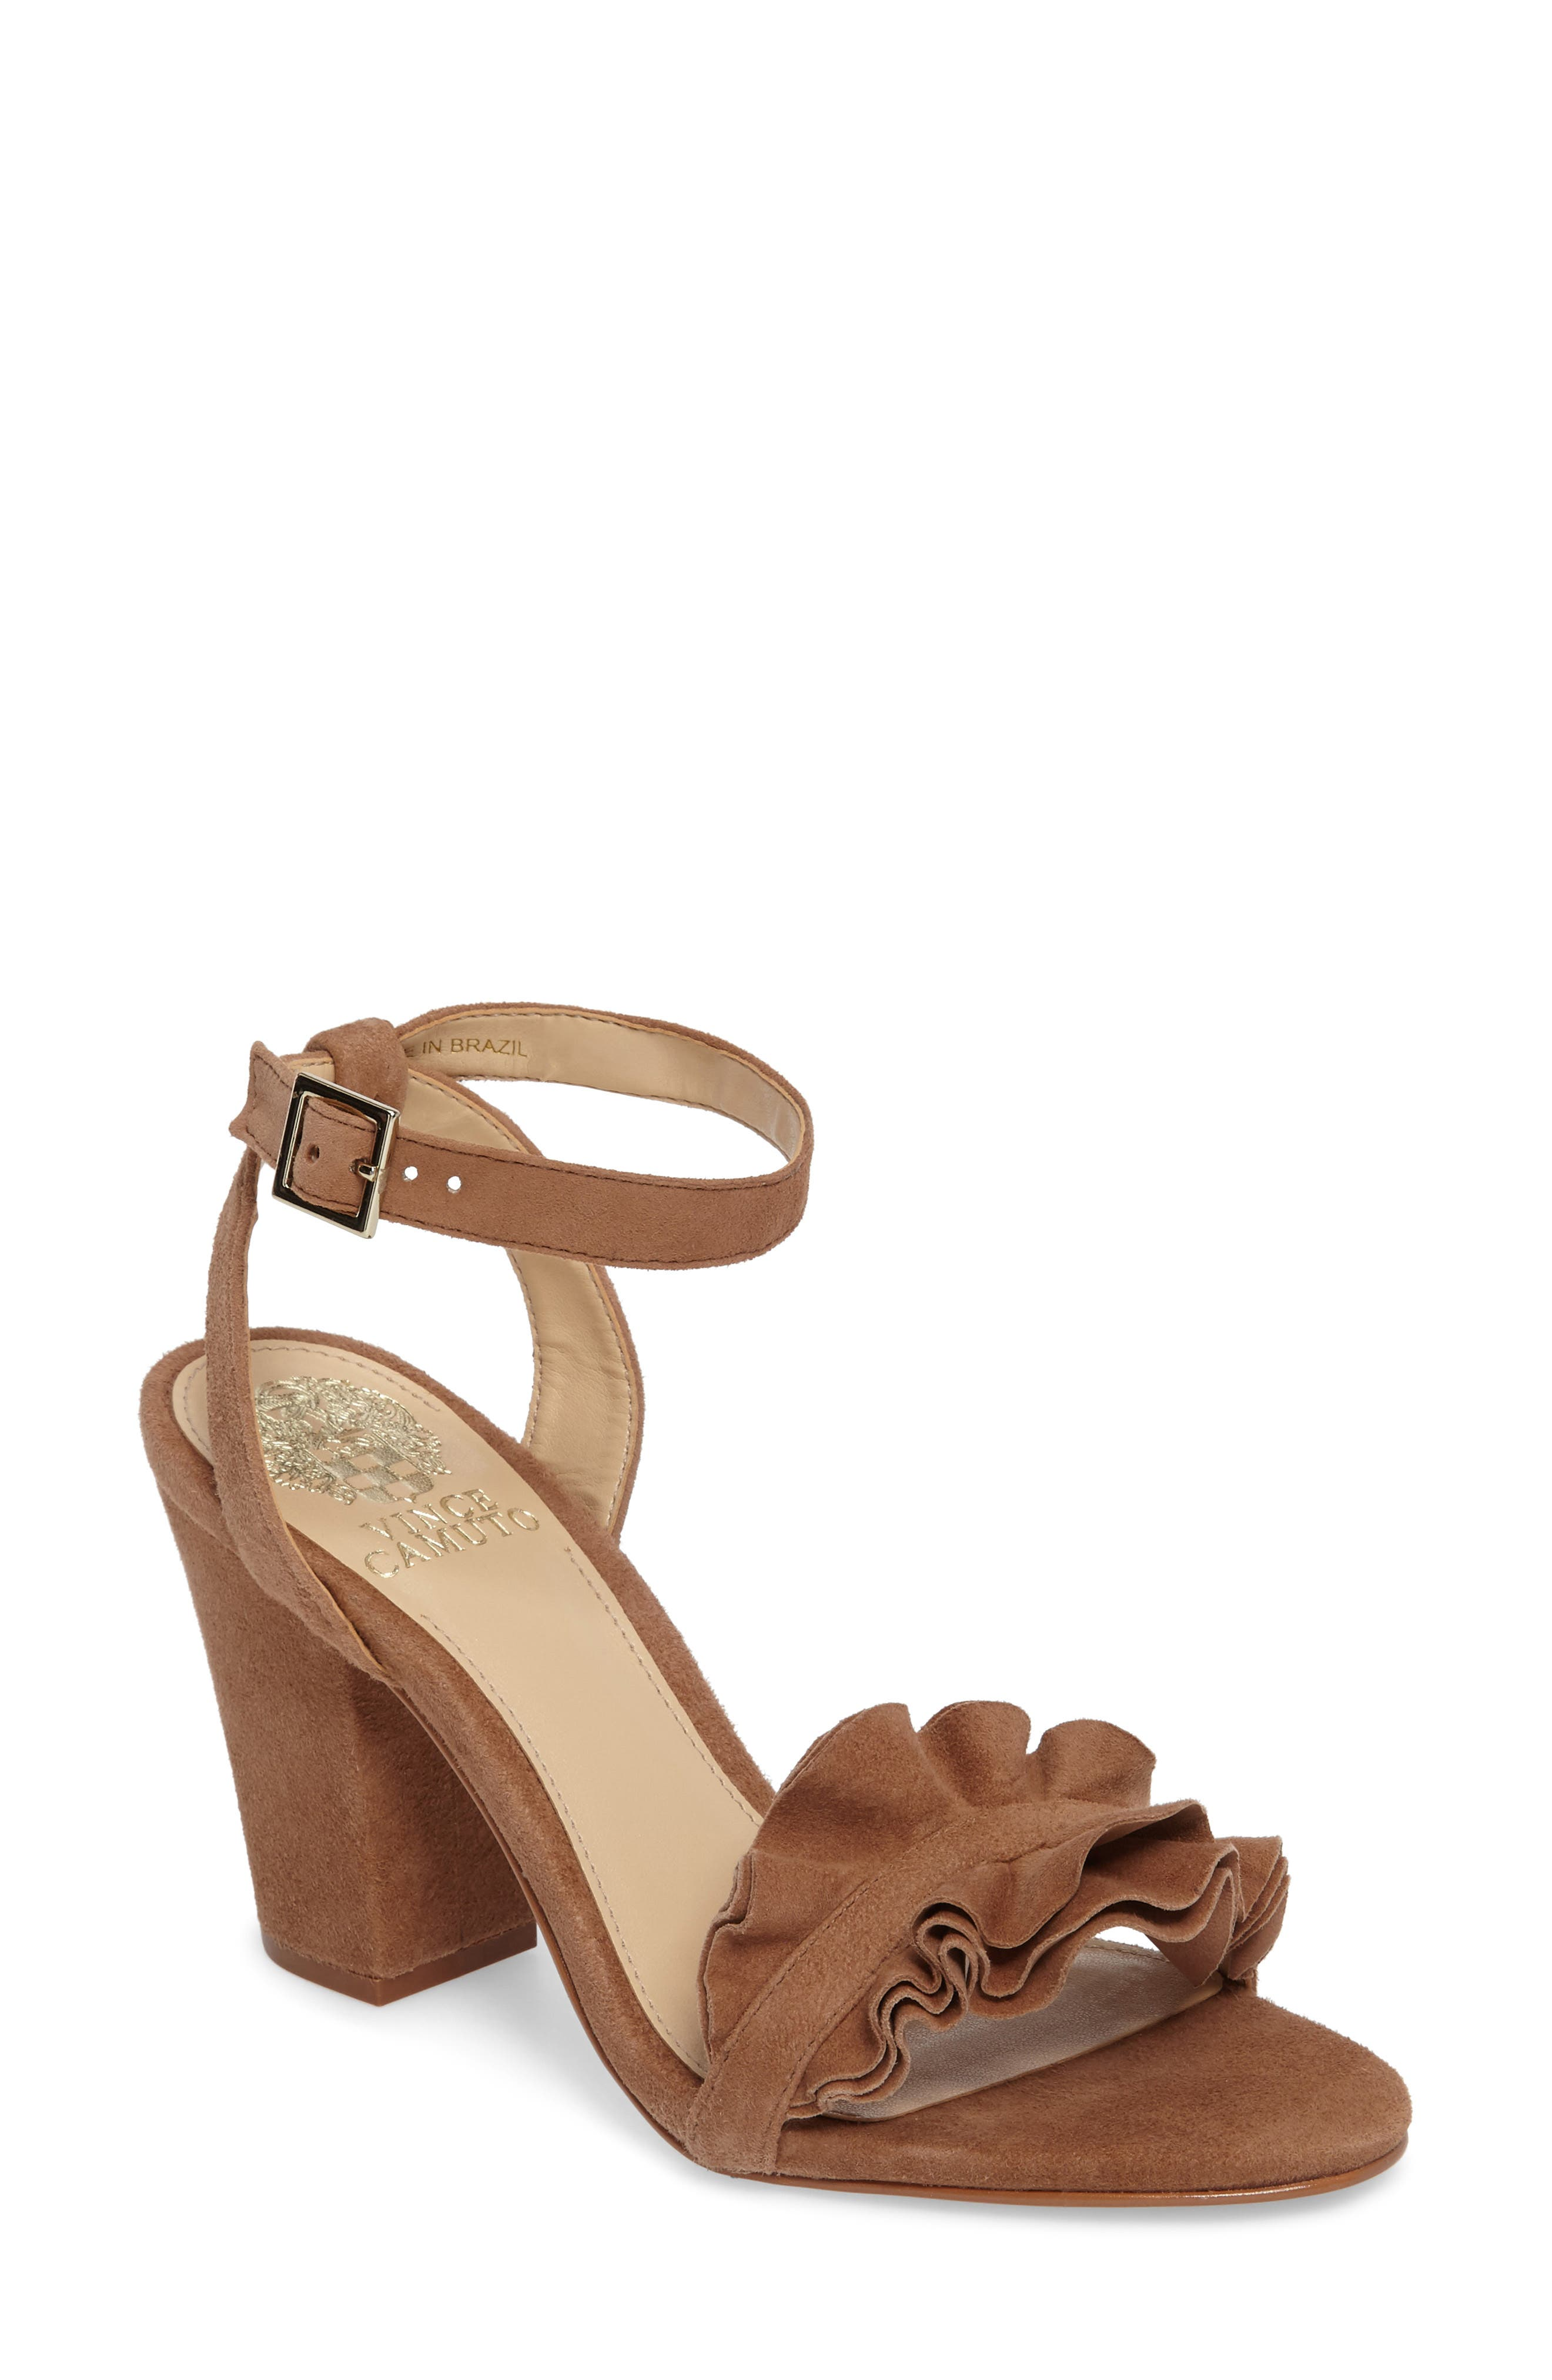 Vinta Sandal,                         Main,                         color, Amendoa Suede